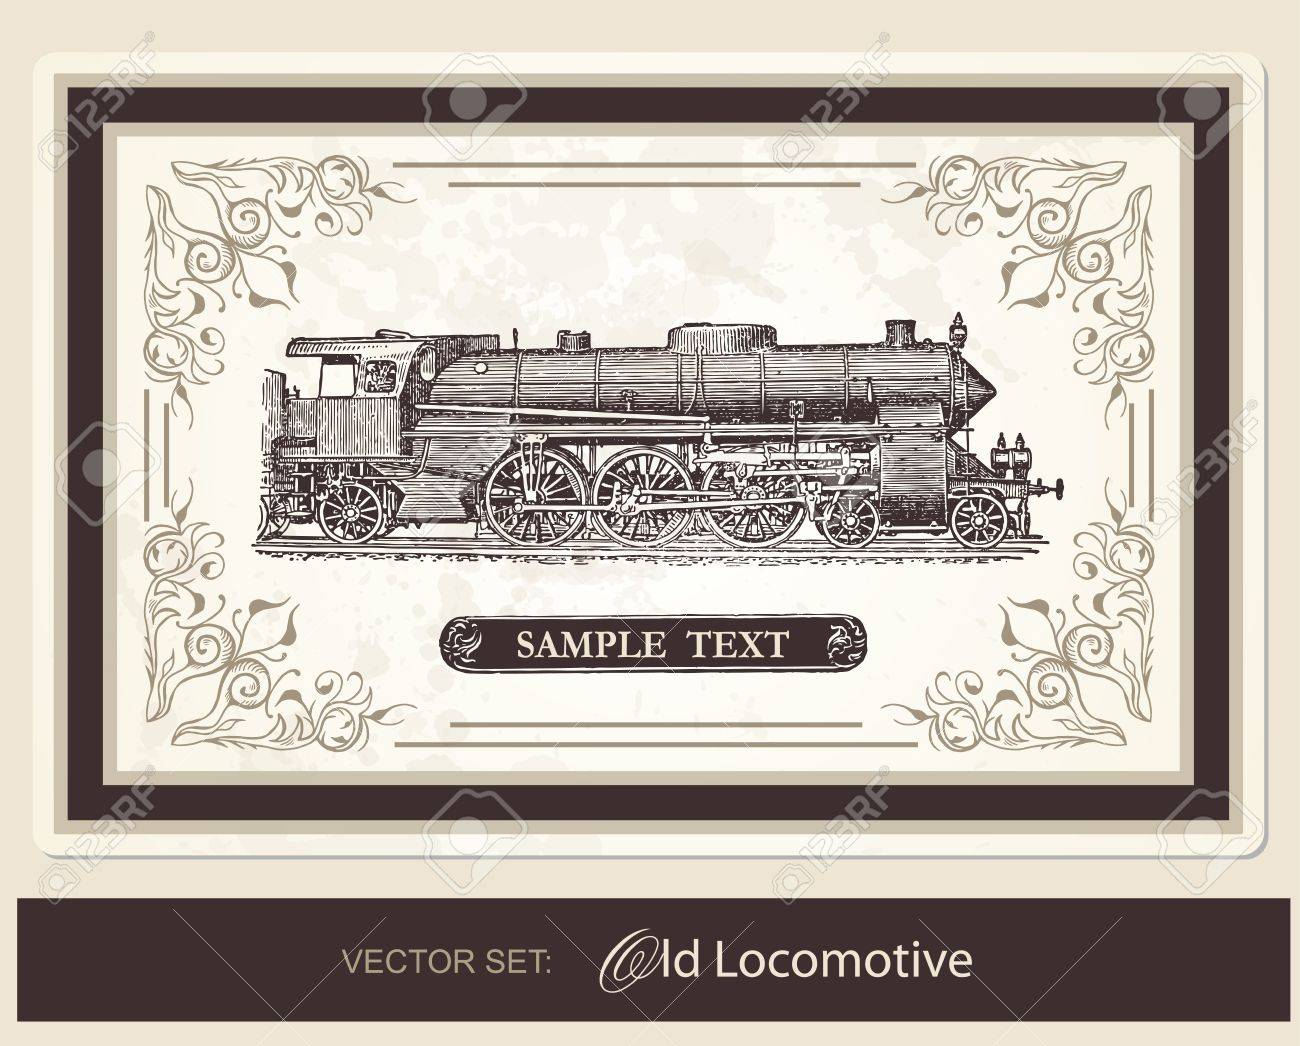 Historical Locomotive Stock Vector - 10421570